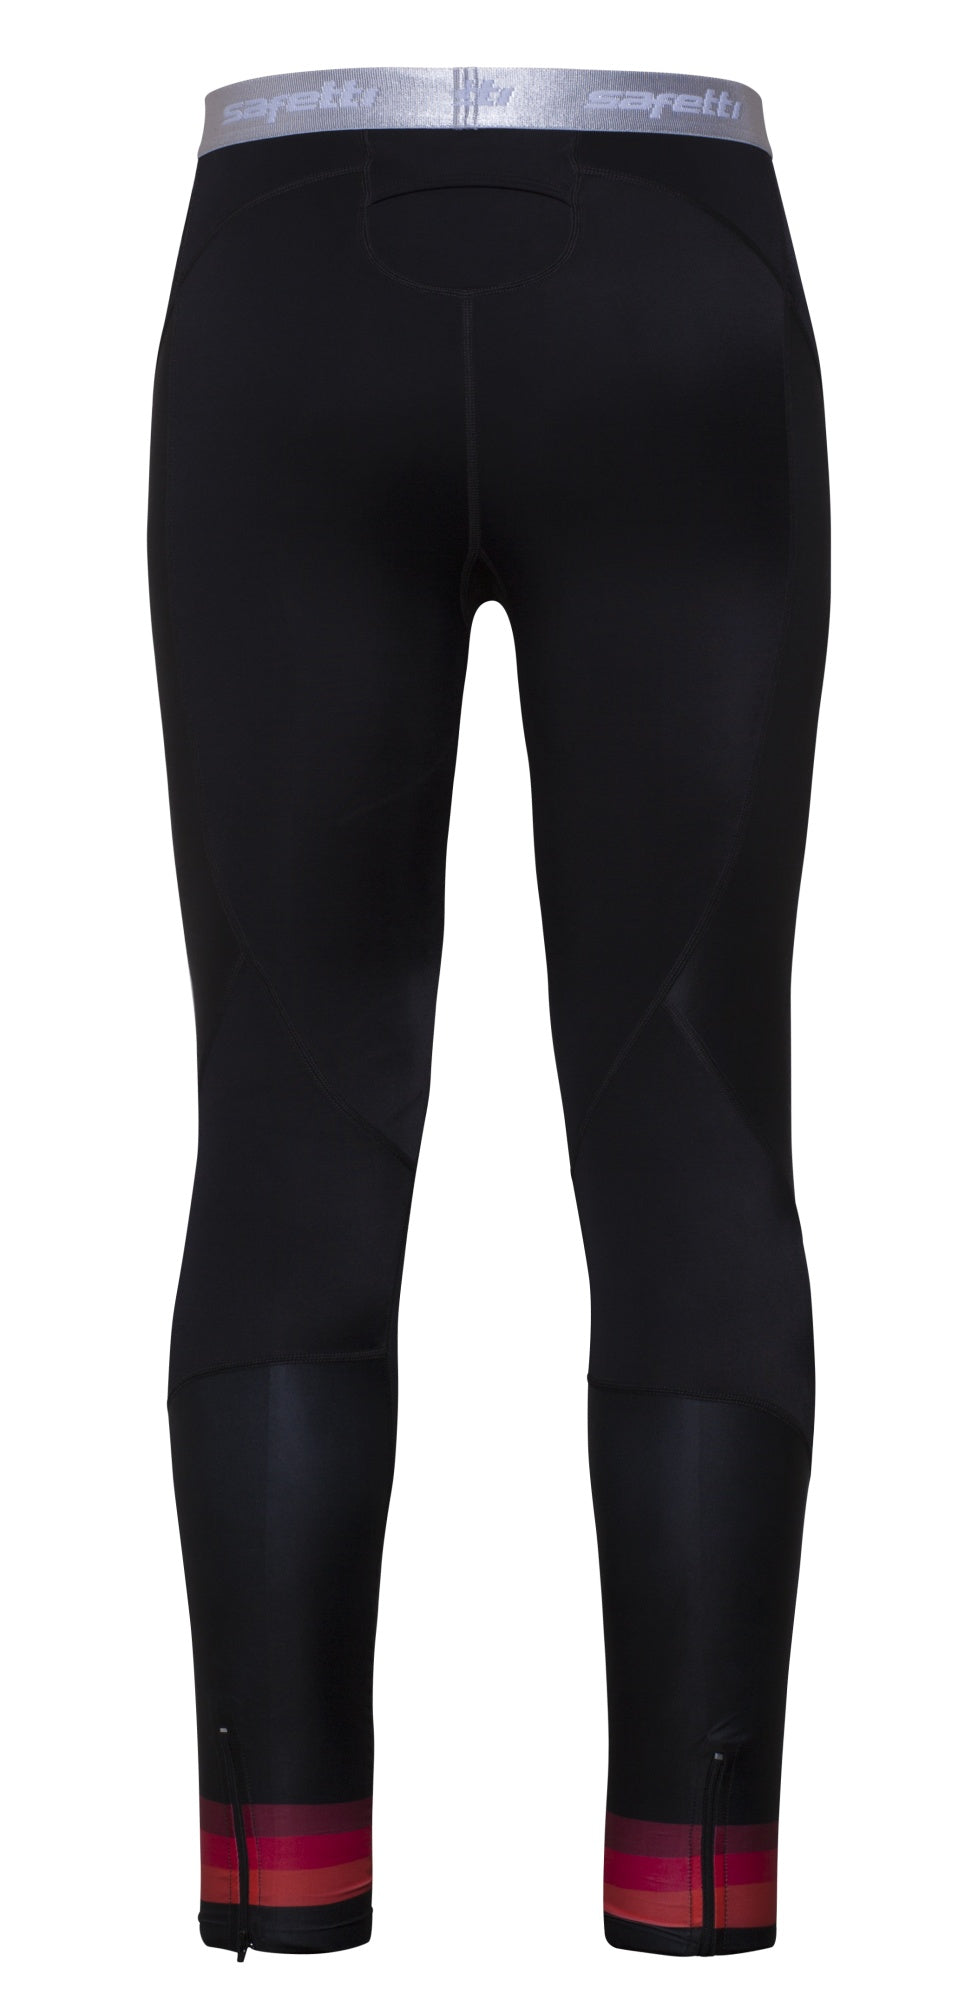 Classic - Fitness Running Pants